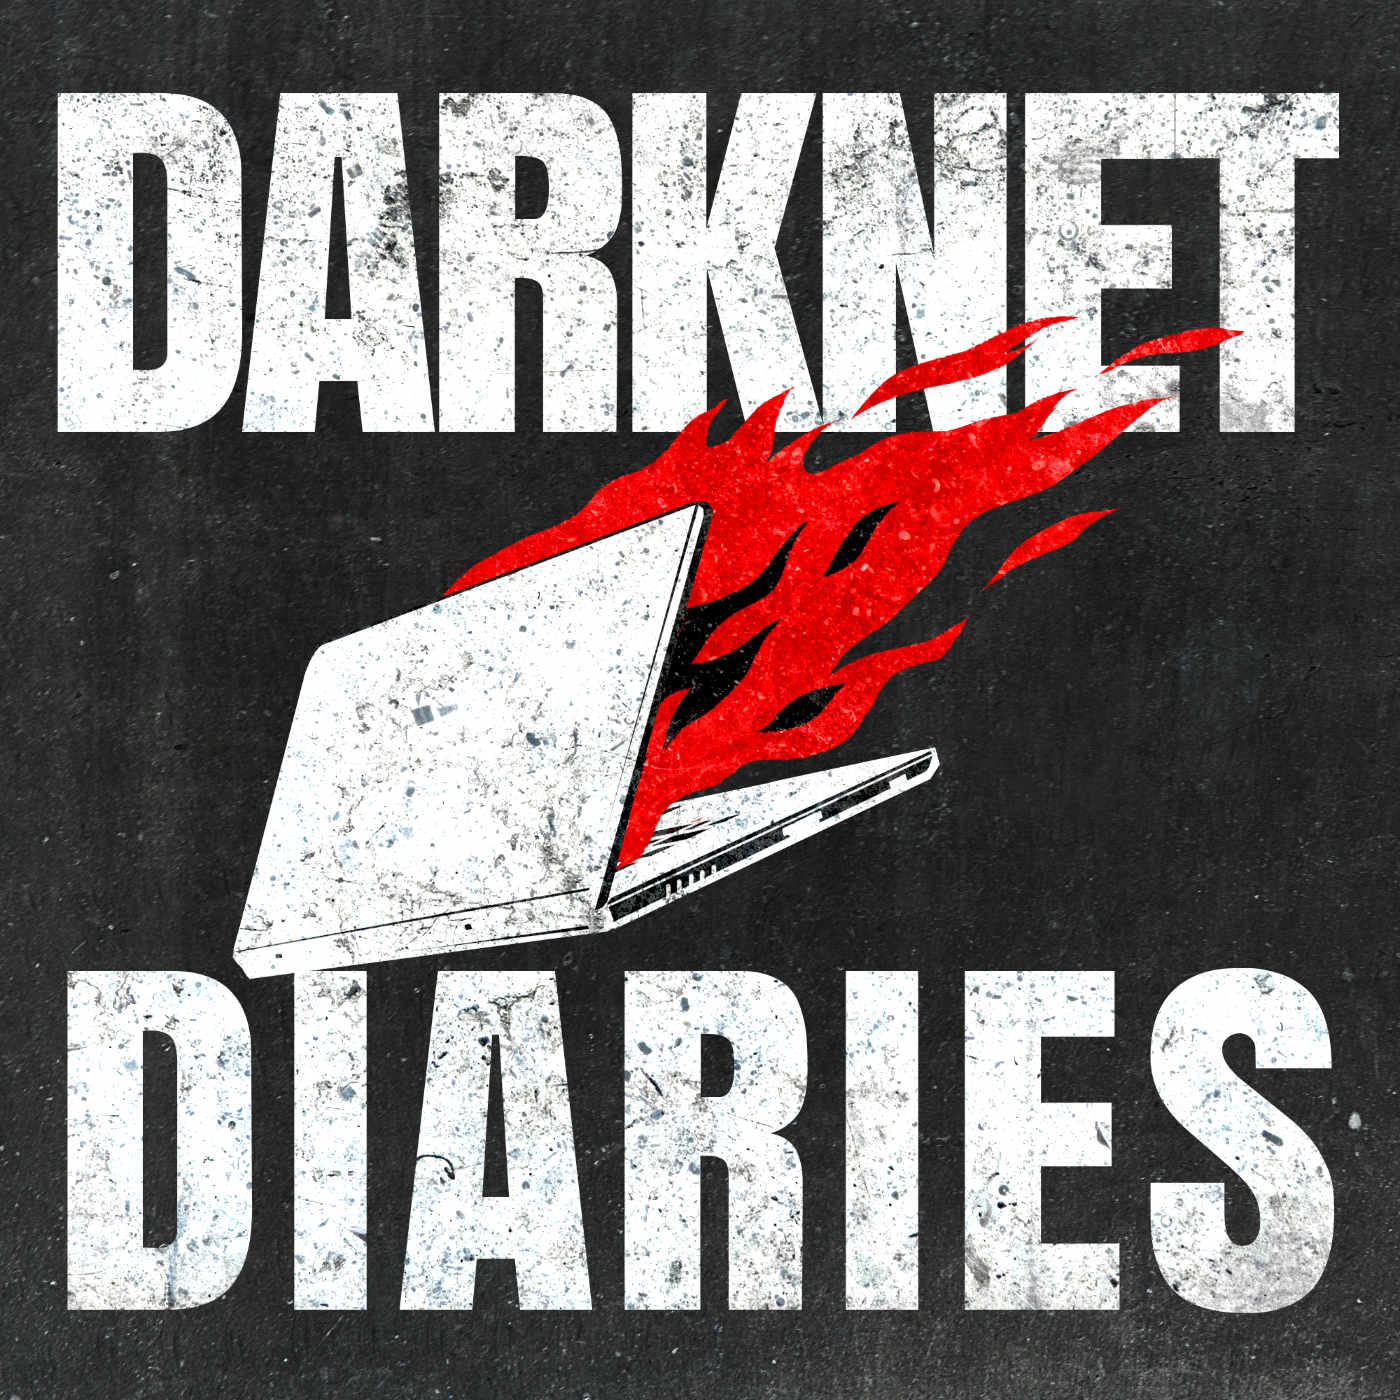 Darknet Diaries – True stories from the dark side of the